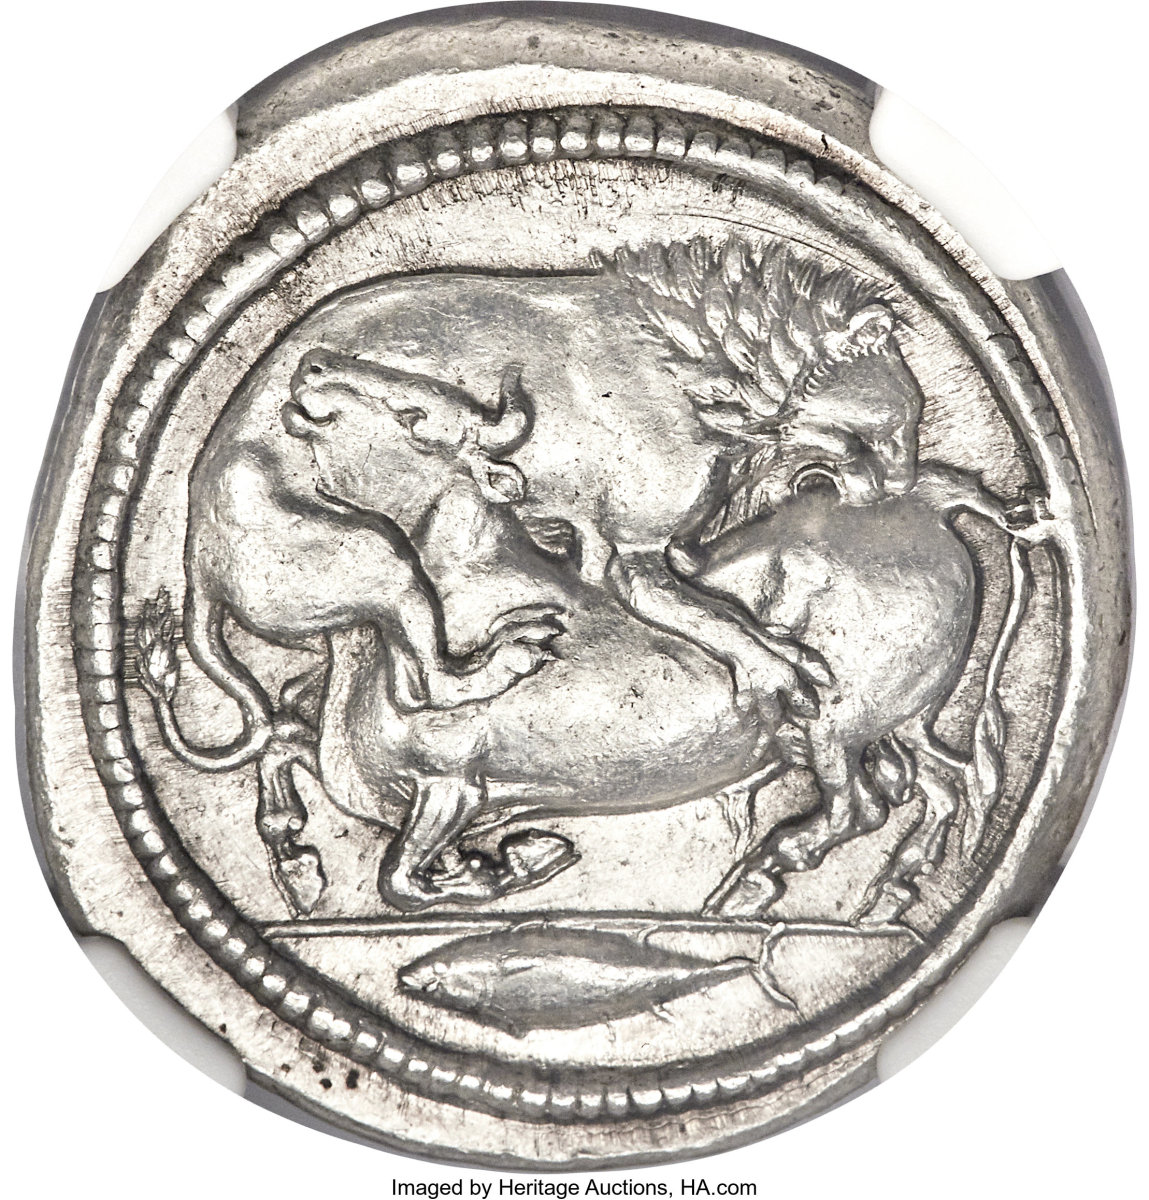 A lion and bull fight to the death on the obverse of this delightful Macedonian silver tetradrachm struck in Acanthus c. 470-430 BCE. It will go to the block with a graded of NGC Choice AU★ 5/5 - 4/5, Fine Style. (Image courtesy Heritage Auctions)